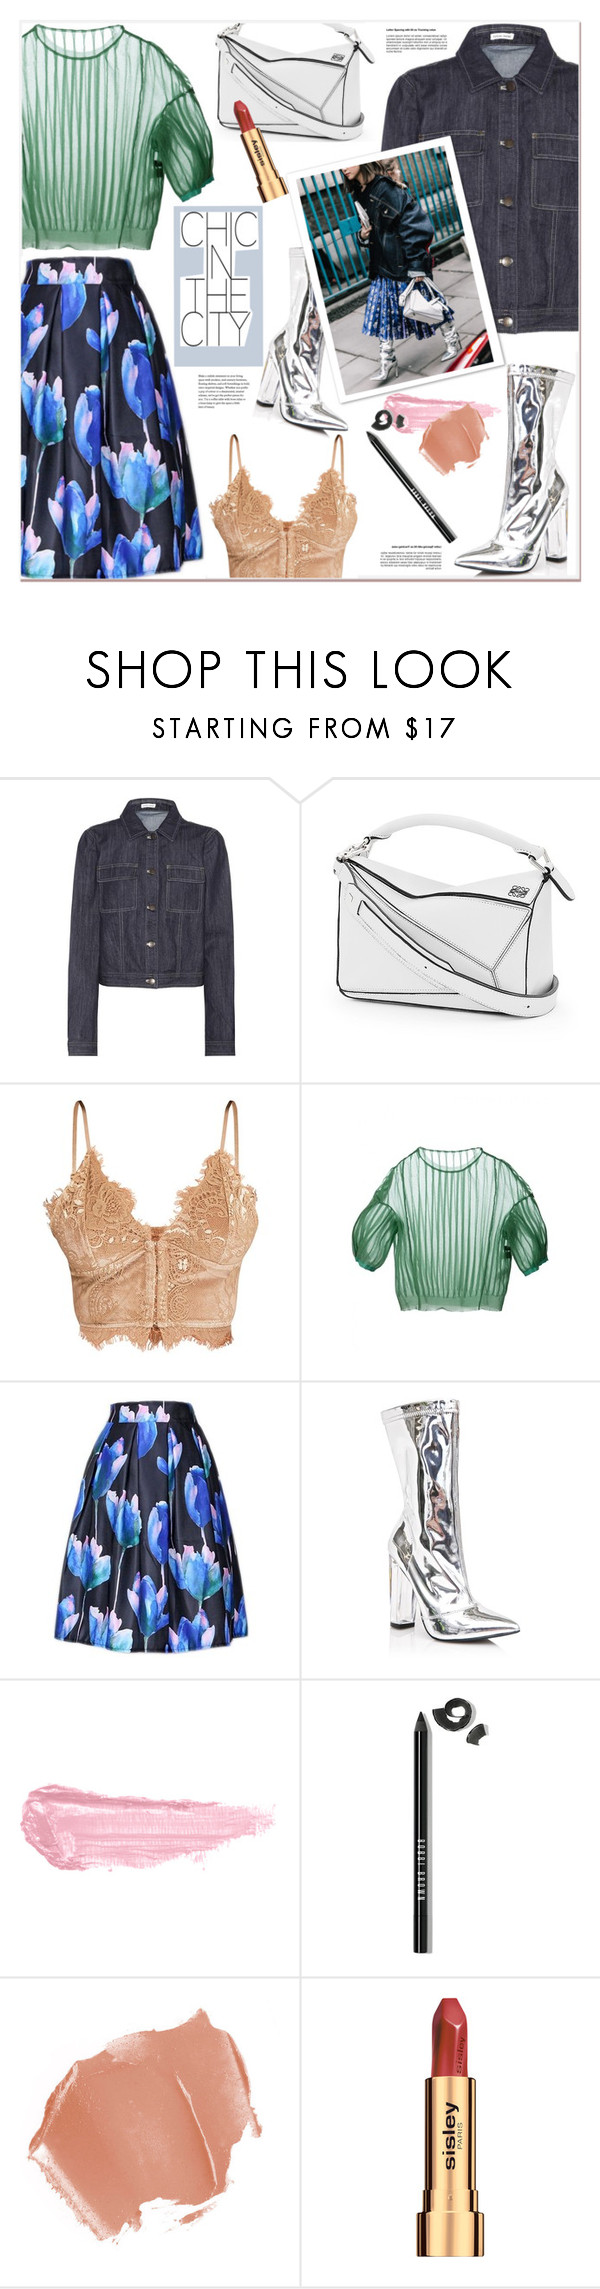 """Chic in the City"" by watereverysunday ❤ liked on Polyvore featuring Tomas Maier, Loewe, Shoe Republic LA, By Terry, Bobbi Brown Cosmetics, Sisley, chic, denimjacket, pleatedskirt and whitebag"